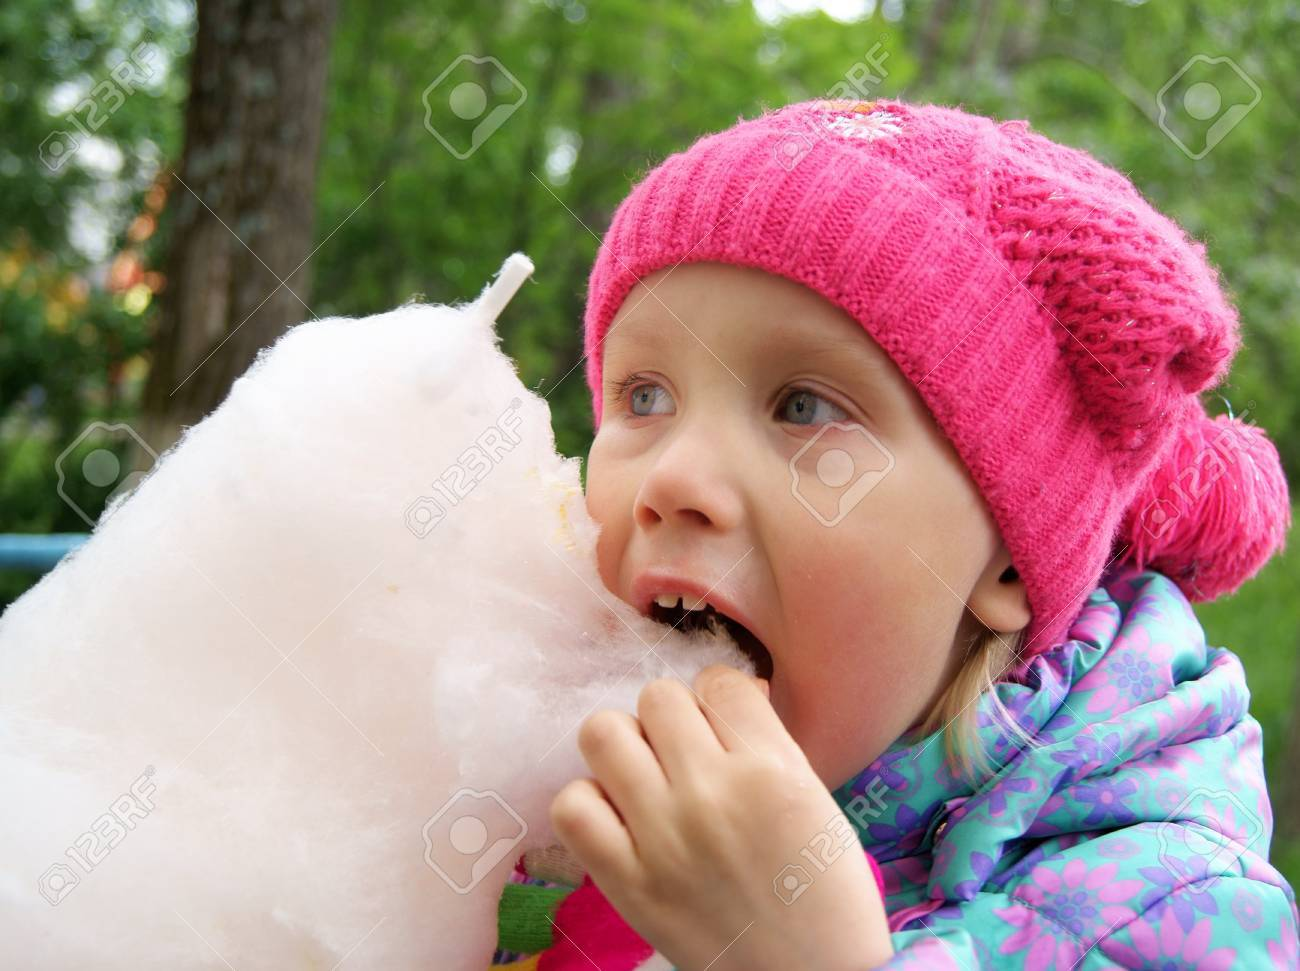 Little girl eats a cotton candy in the park Stock Photo - 10180845